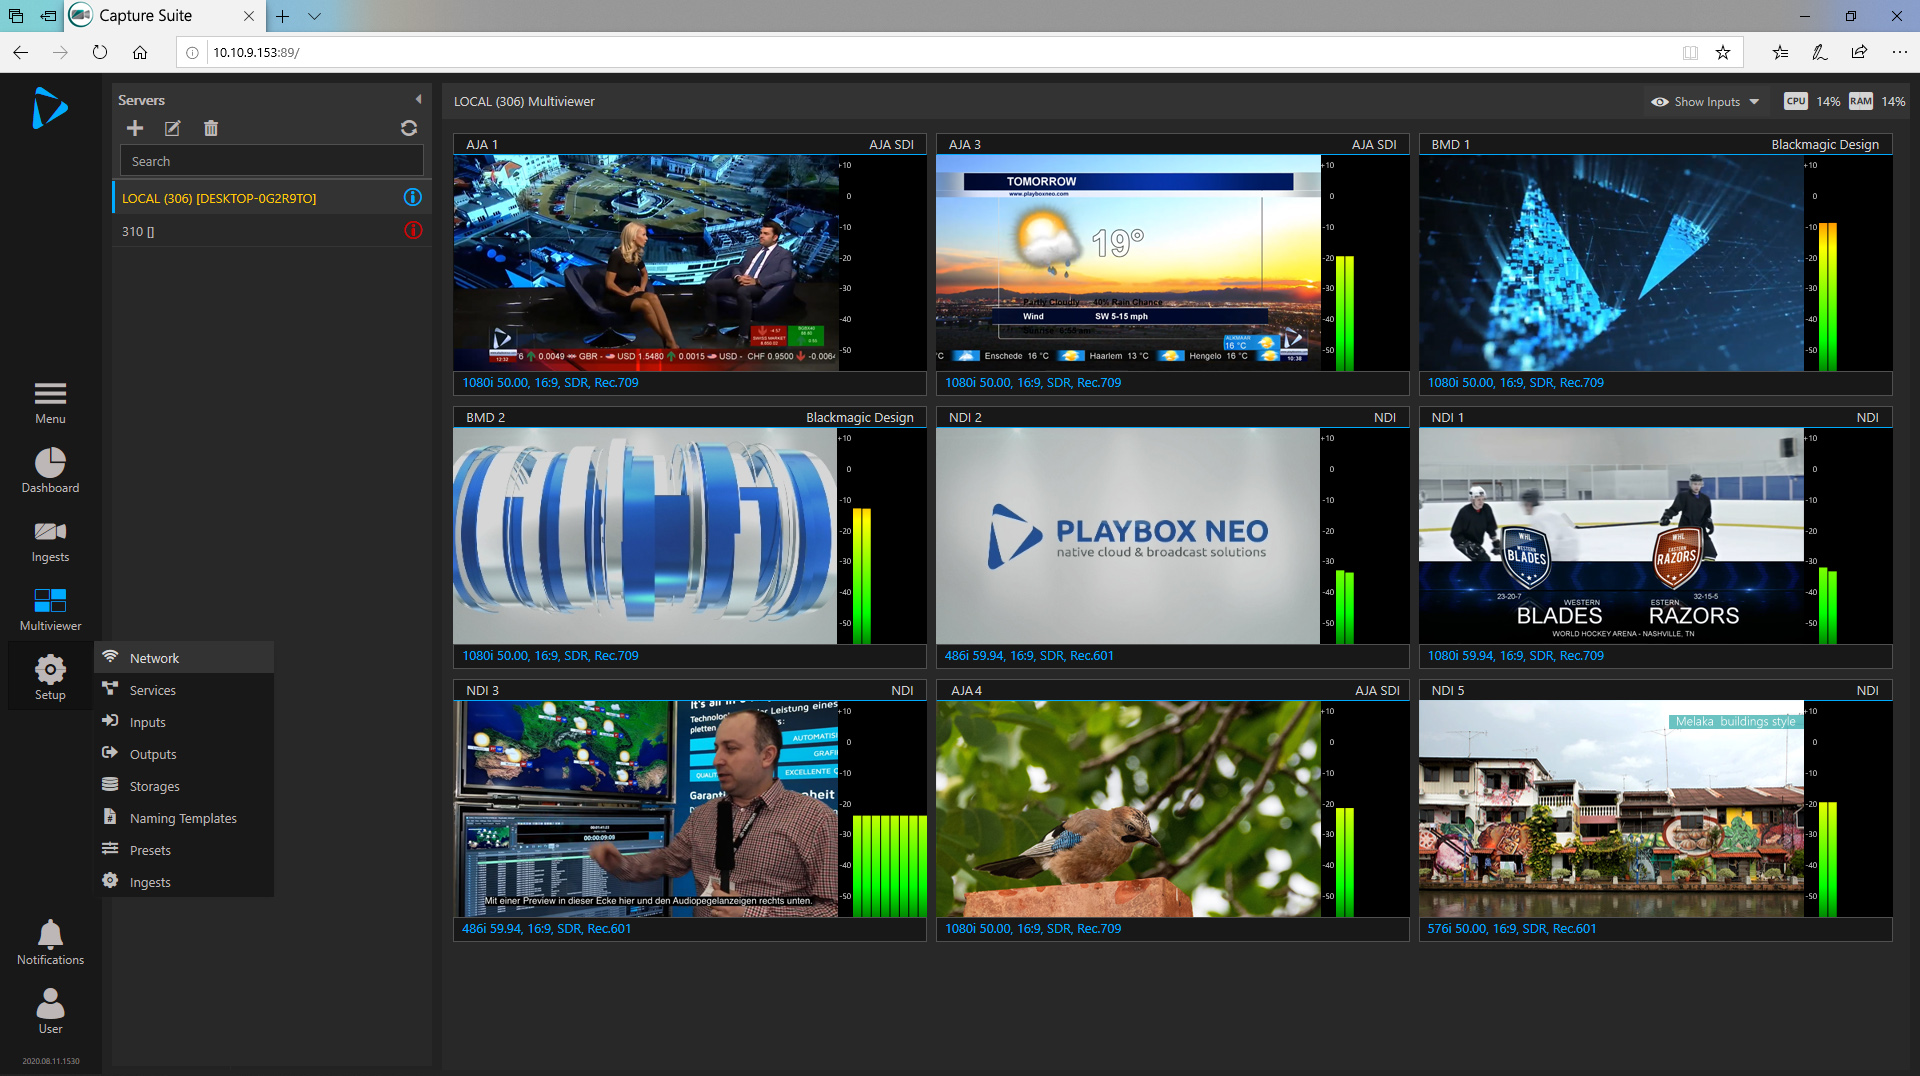 PlayBox Neo Capture Suite GUI